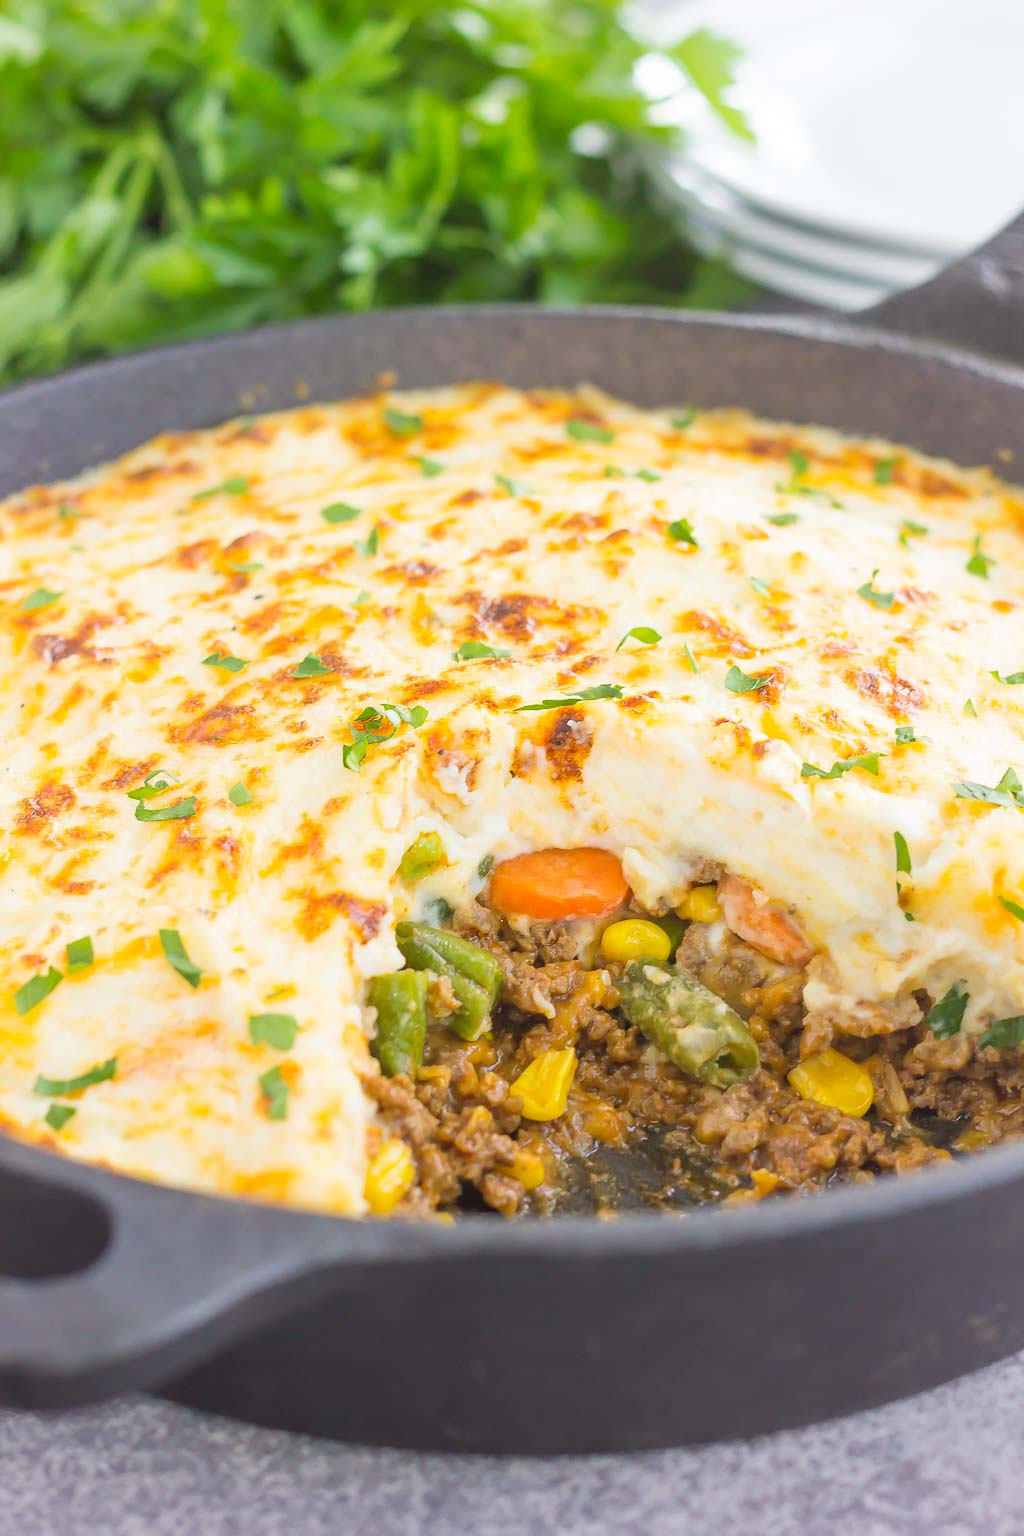 This Easy Shepherd's Pie features a unique spin on the classic version and is ready in less than 20 minutes. Loaded with zesty ground beef, cheddar cheese, mixed veggies, and topped with creamy, cheesy mashed potatoes, this is the ultimate comfort dish for everyone to enjoy!